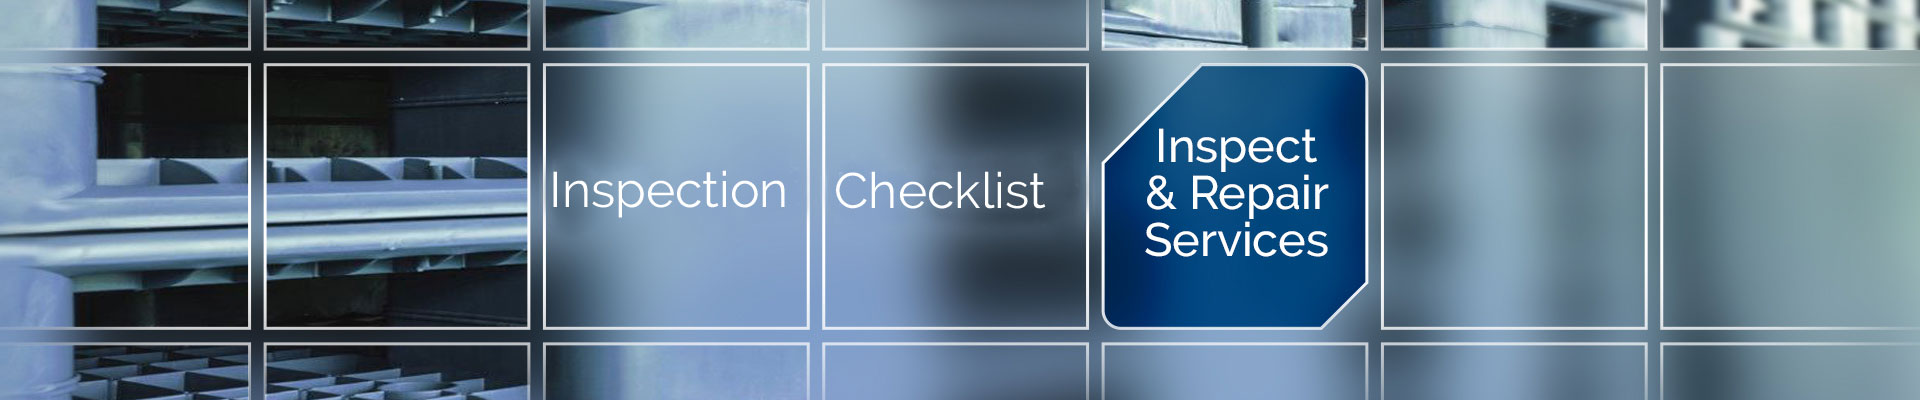 inspect_header_inspection-checklist